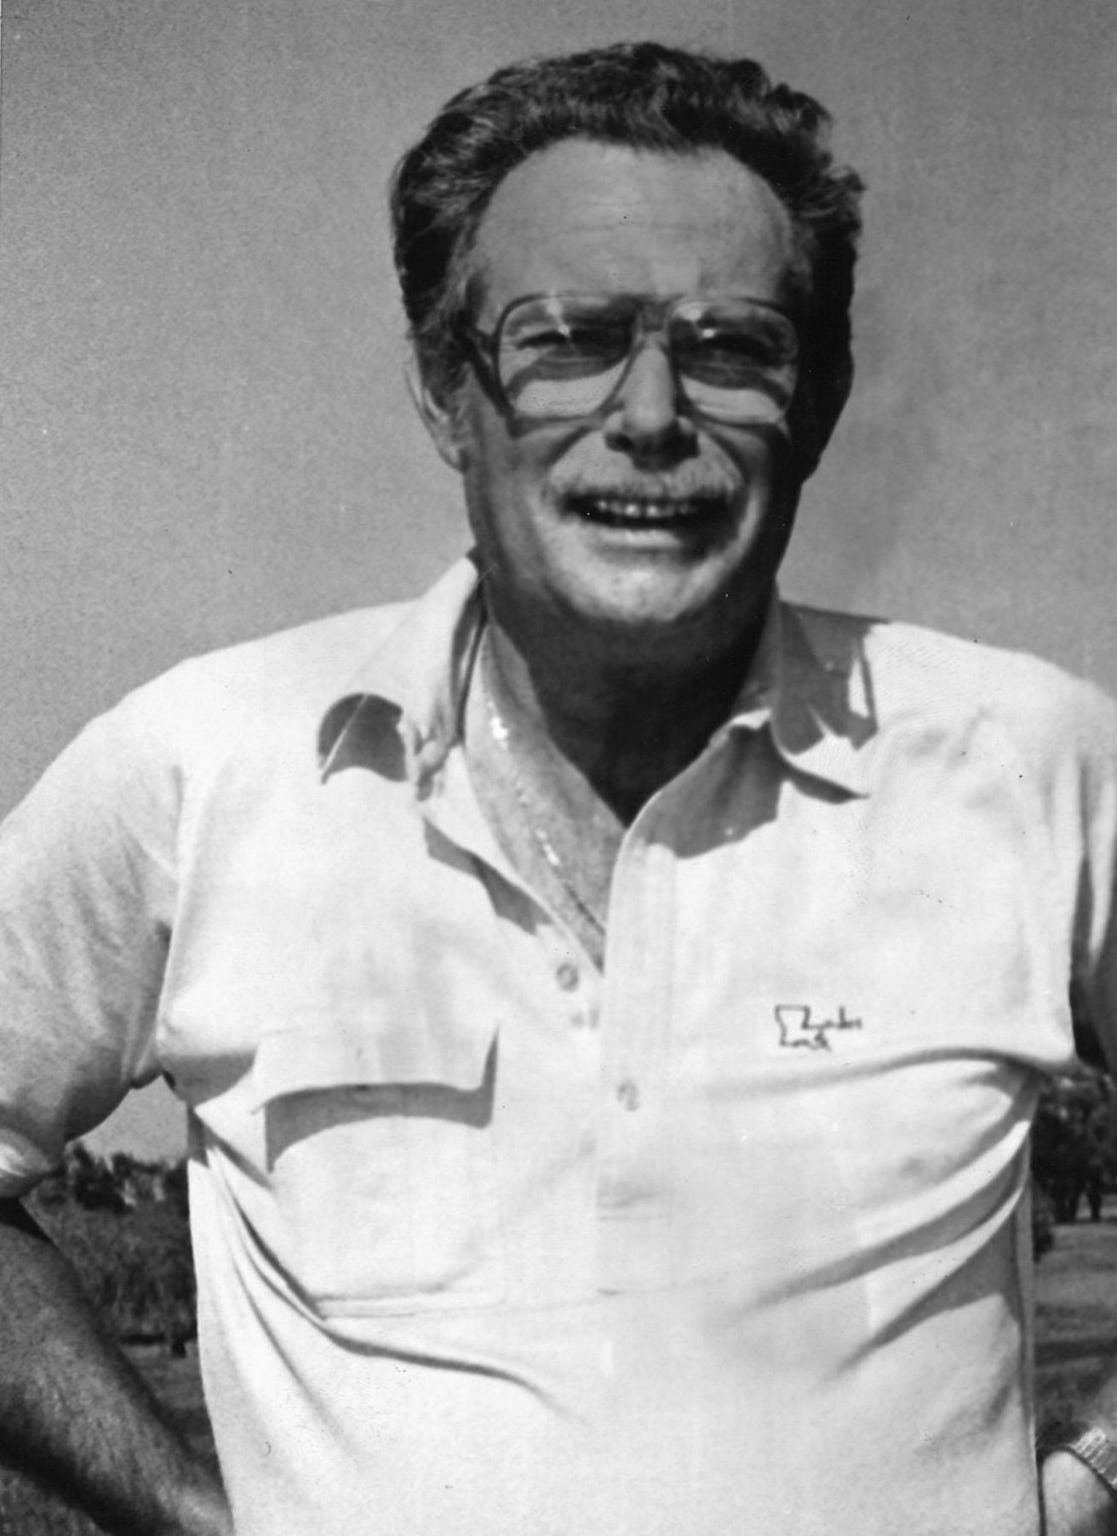 Frank Sheffield back in the day was involved with the pro golf tournament at Fairway Oaks Golf & Racquet Club. He is an avid golfer himself.